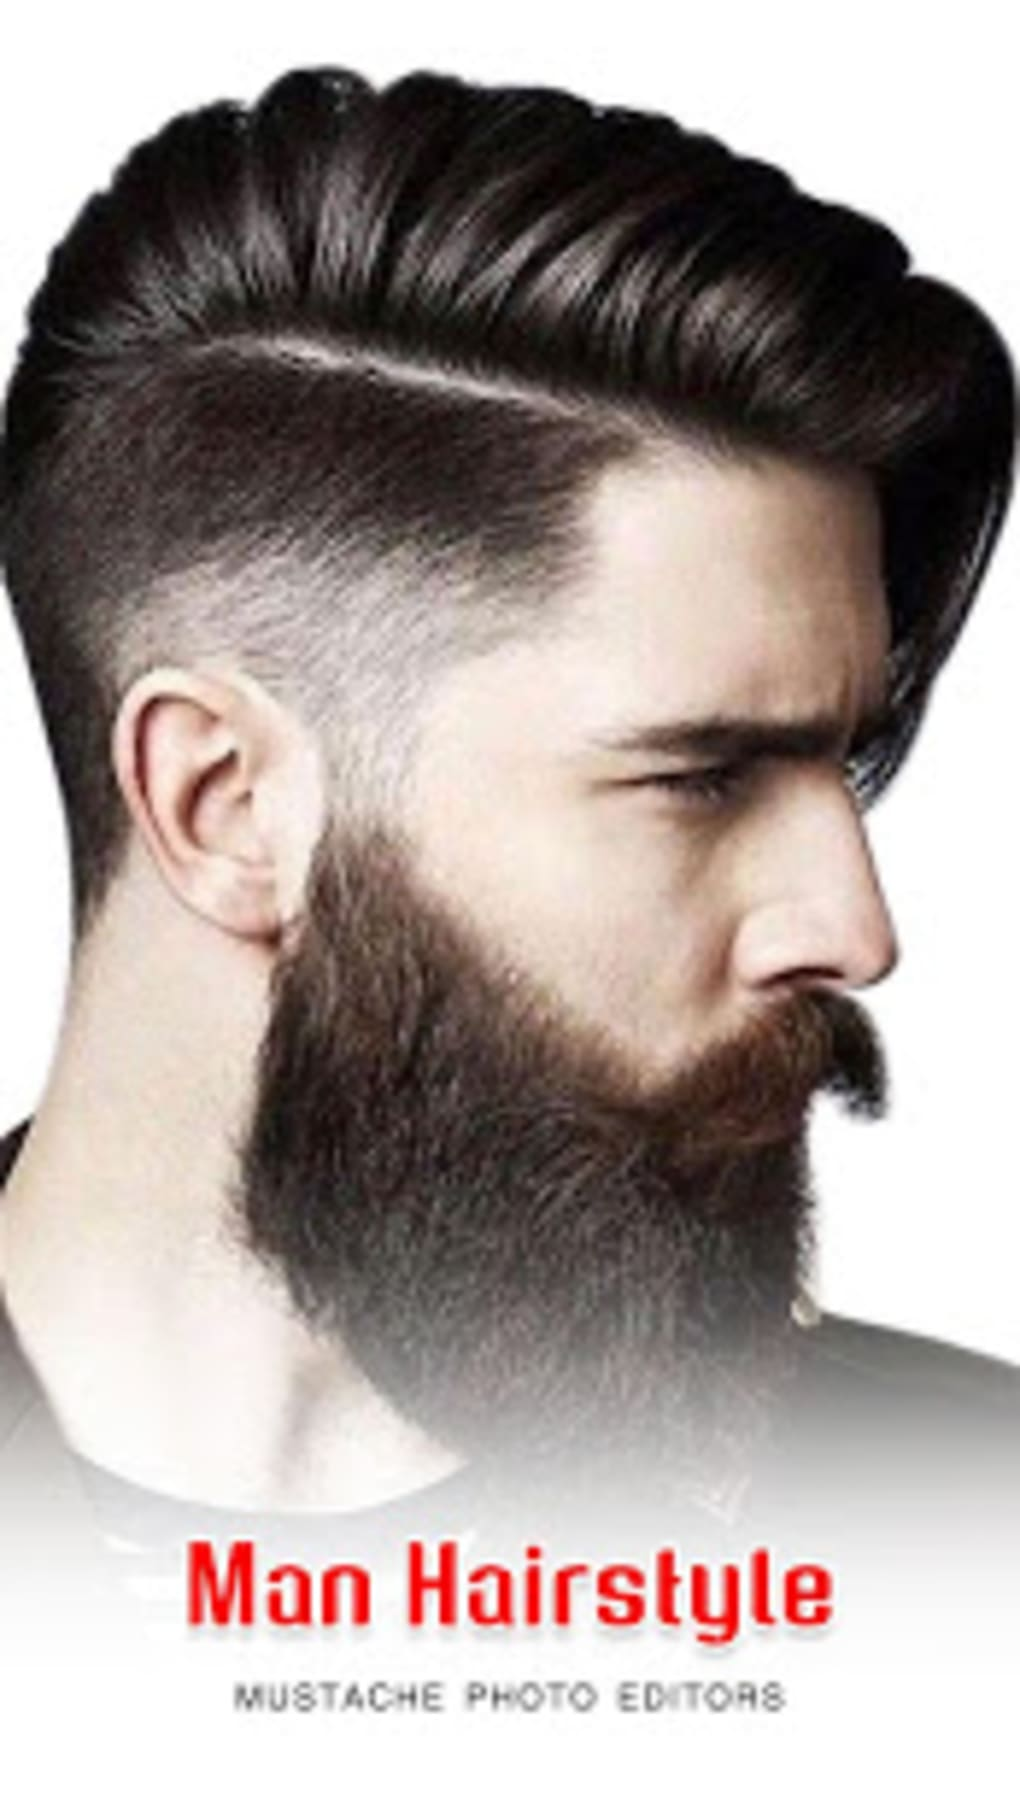 Man Hairstyle Image Download Hairstyle Guides